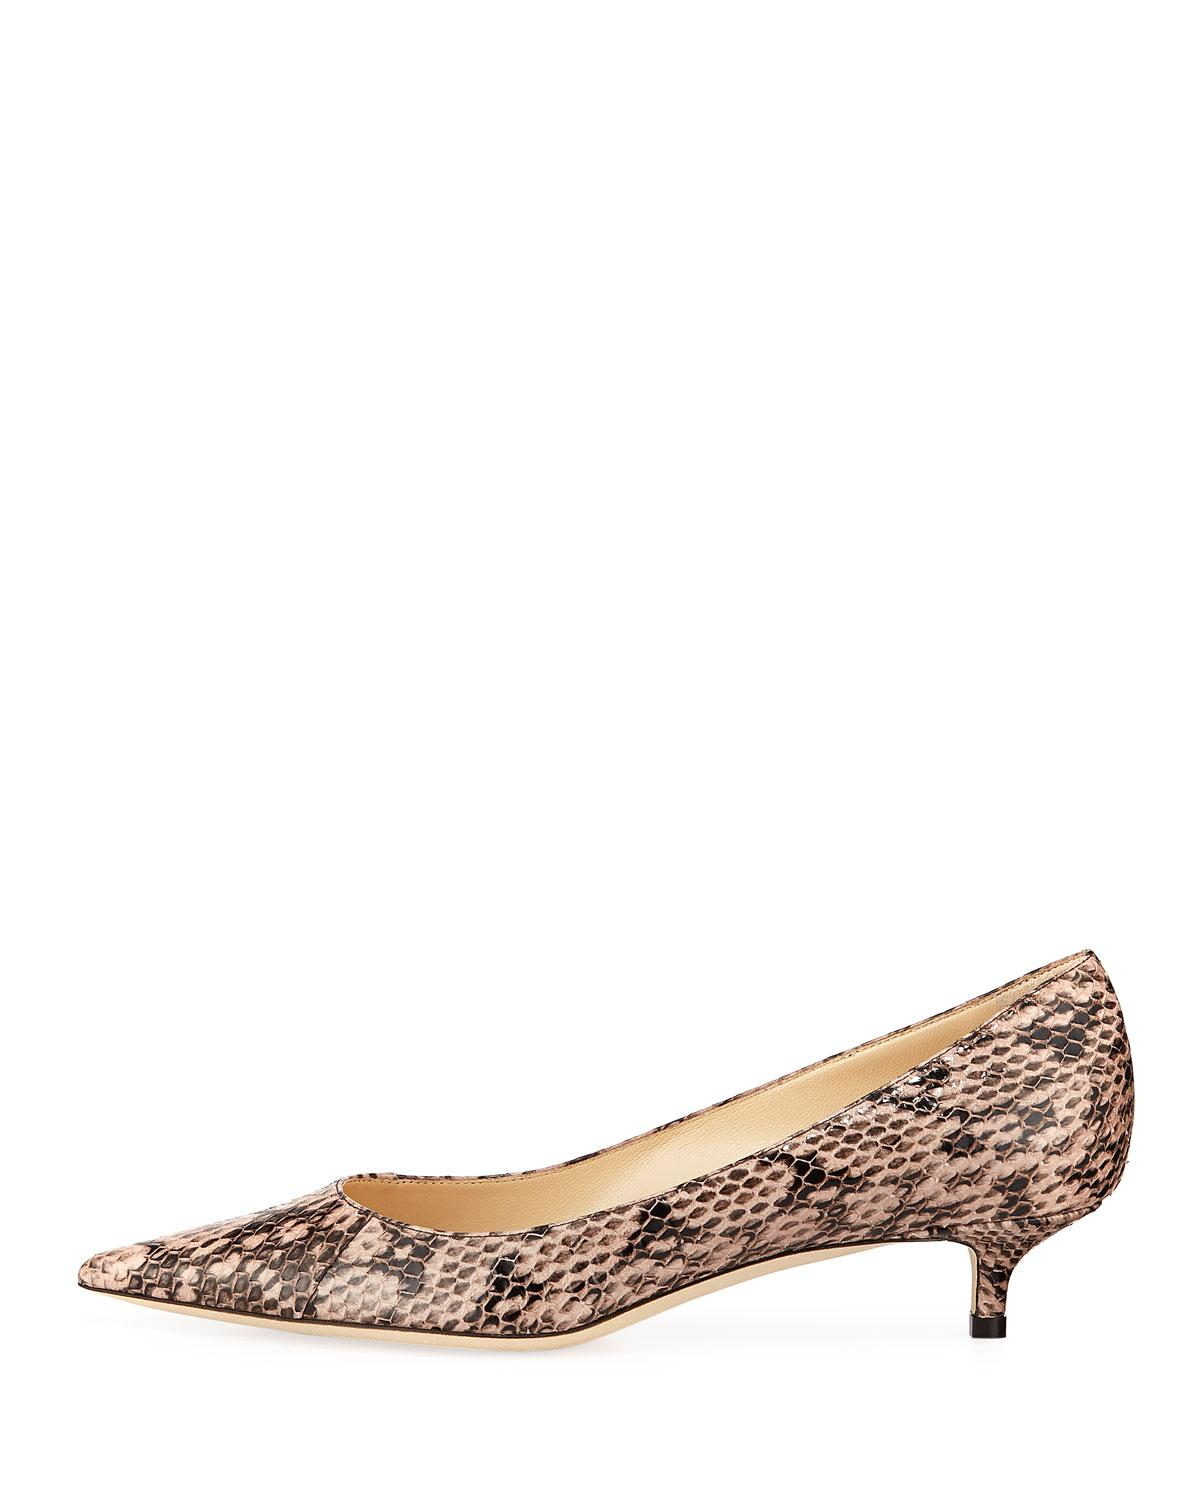 436d050ac714 Lyst - Jimmy Choo Amelia Pointed Snakeskin Pumps in Pink